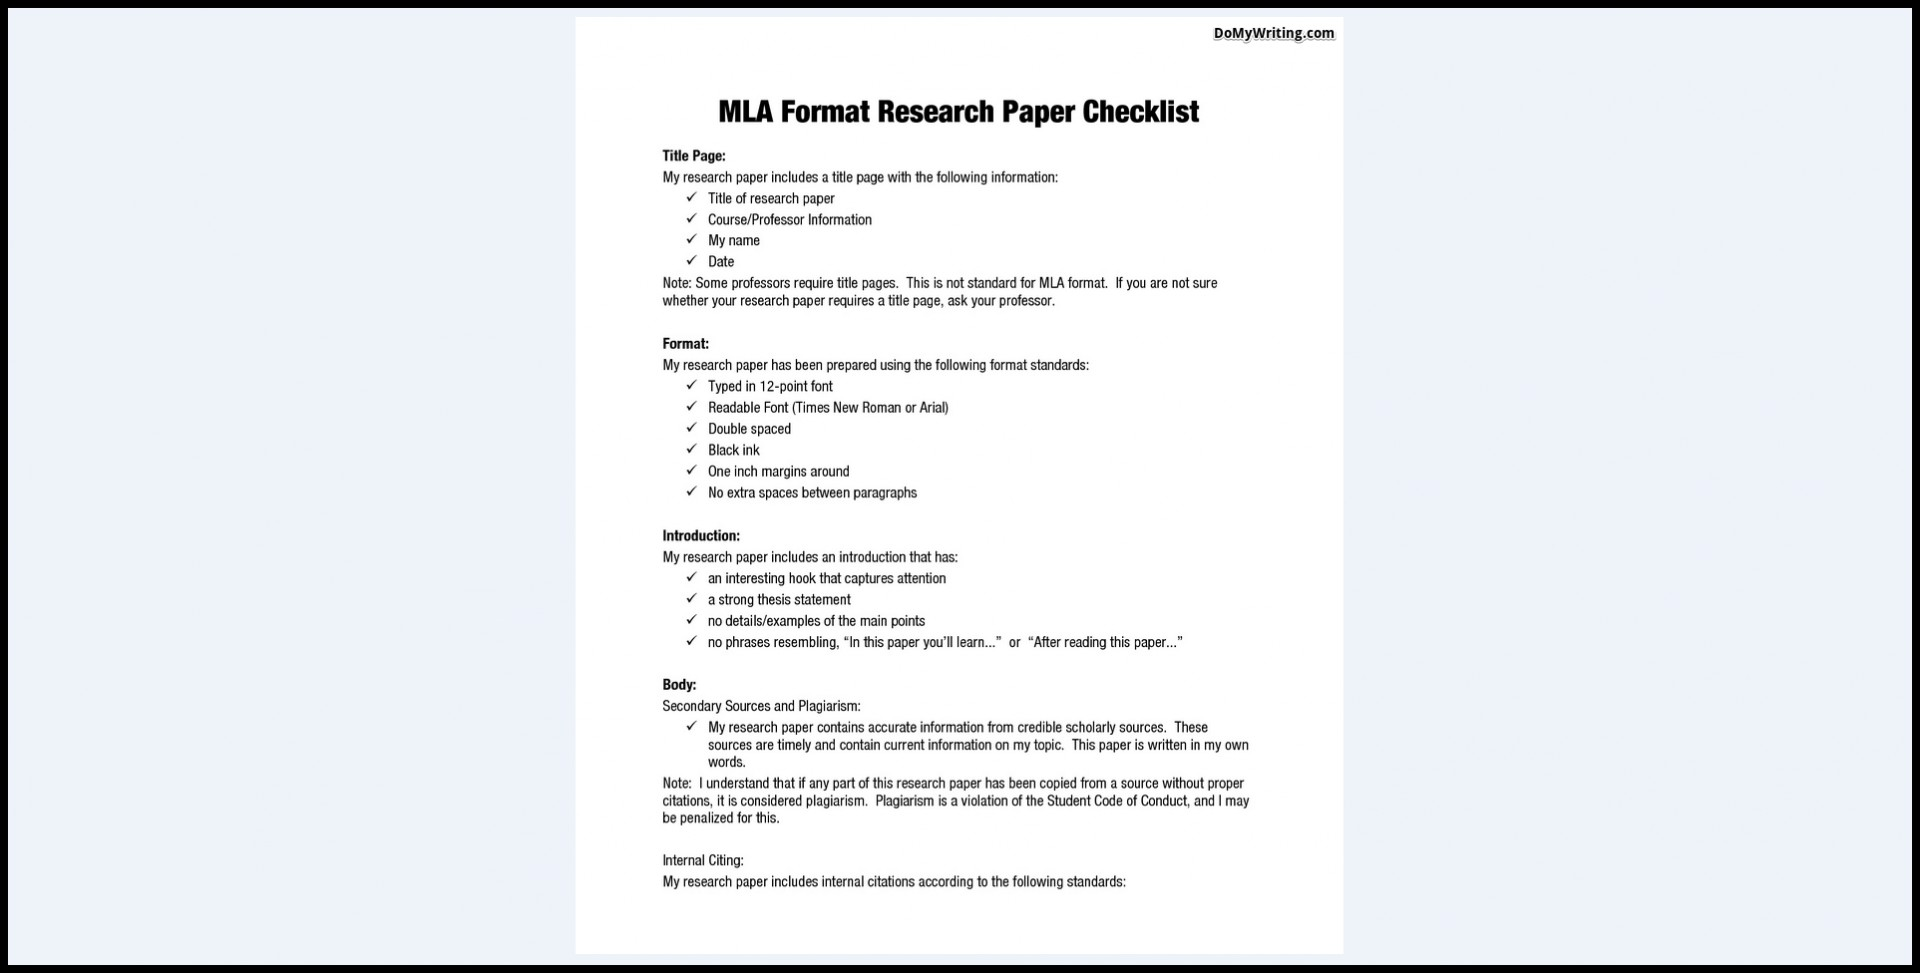 020 Essay Example Mla Format Paper What Is For Unique Essays Proper An 8 1920